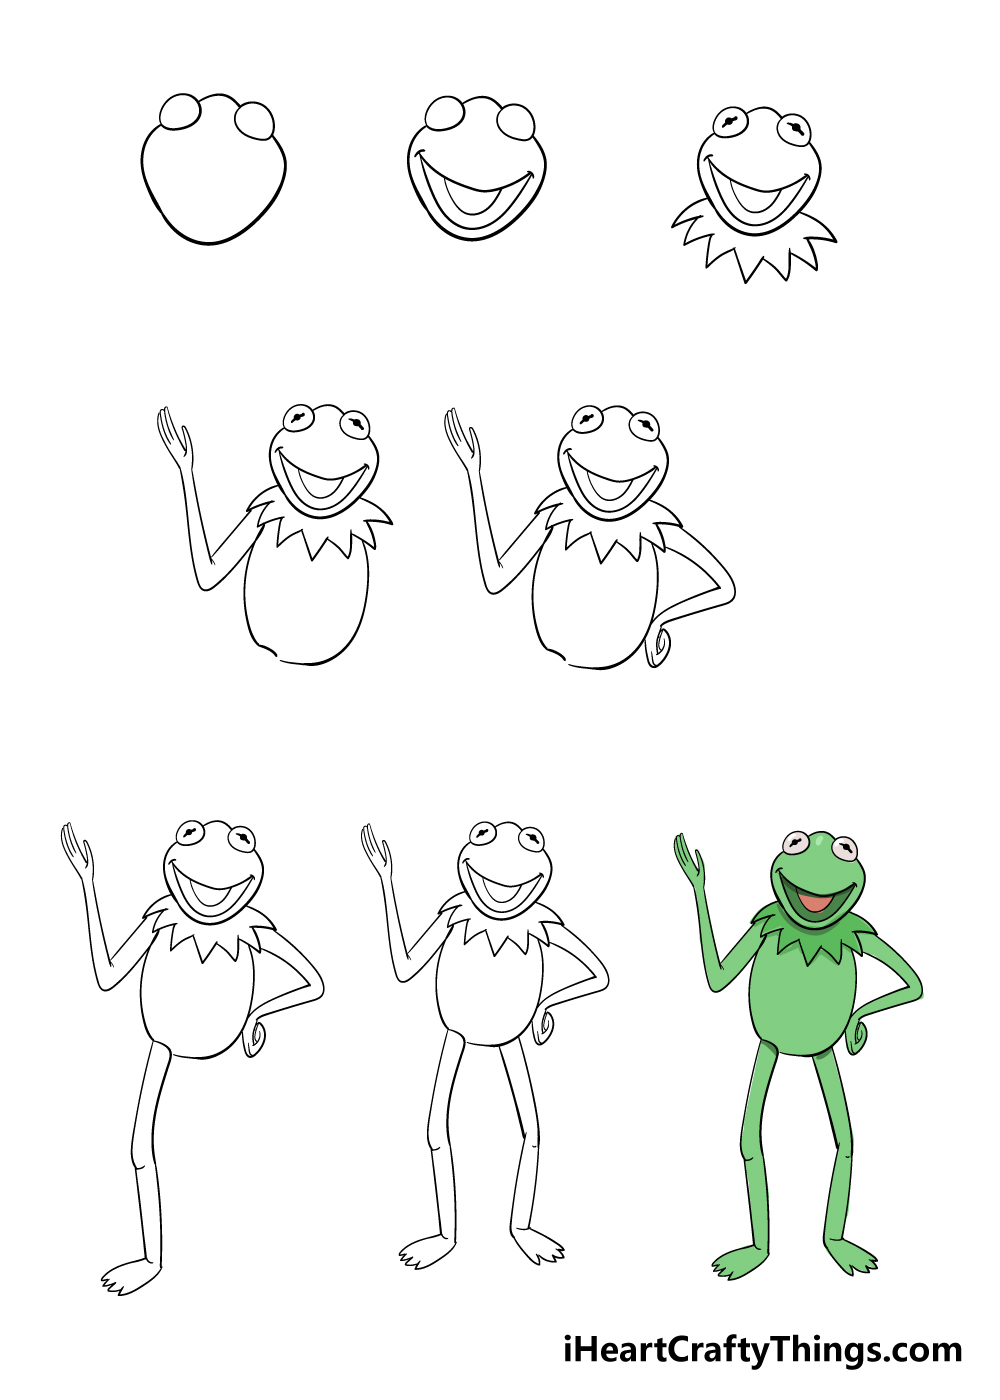 how to draw Kermit the frog in 8 steps